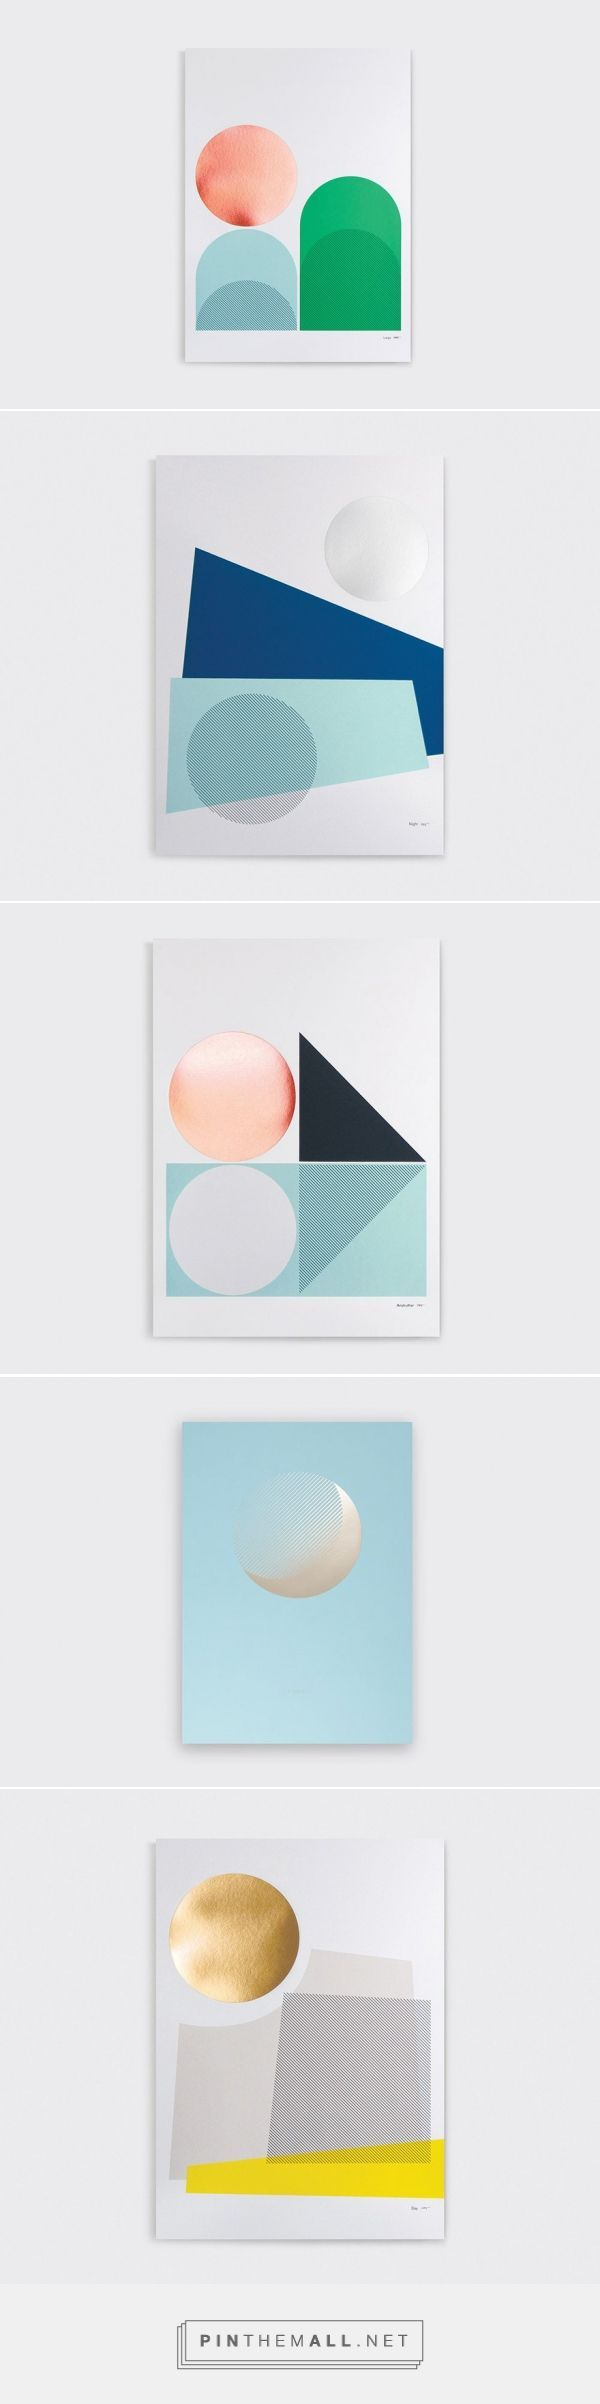 Minimal prints by Tom Pigeon http://www.tompigeon.com/collections/prints